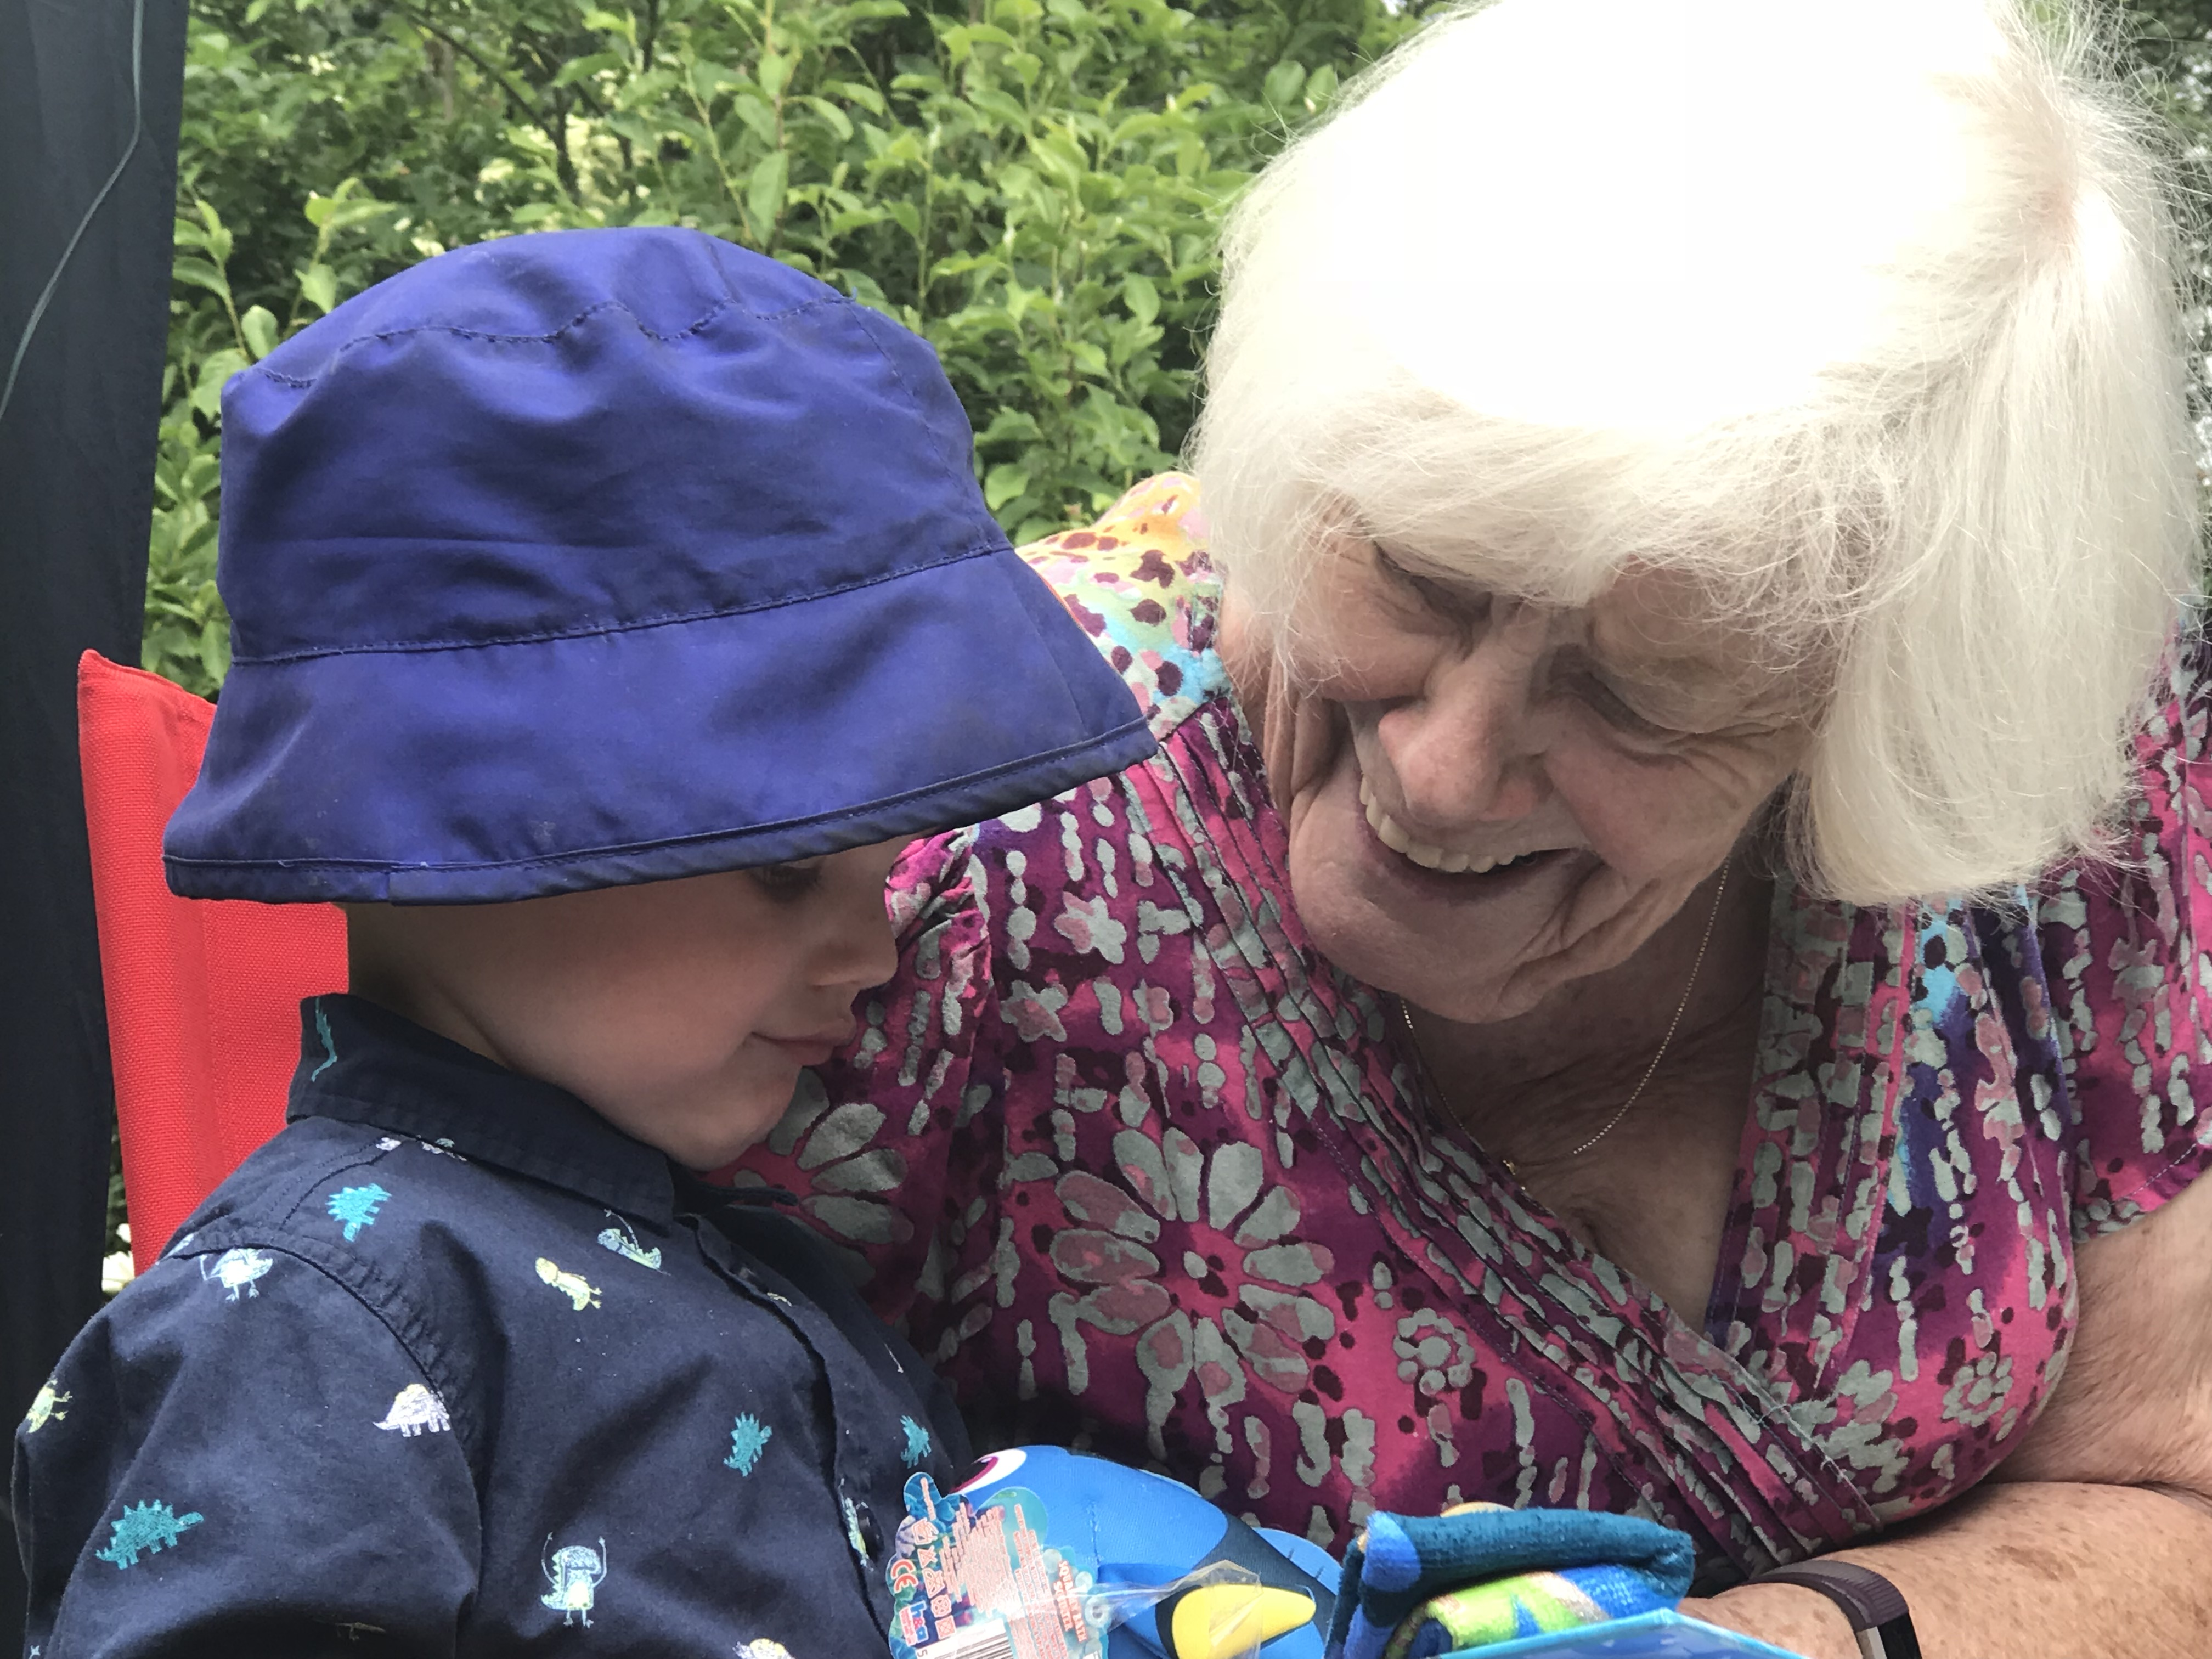 The Creation Station  bring intergenerational activities to young and old